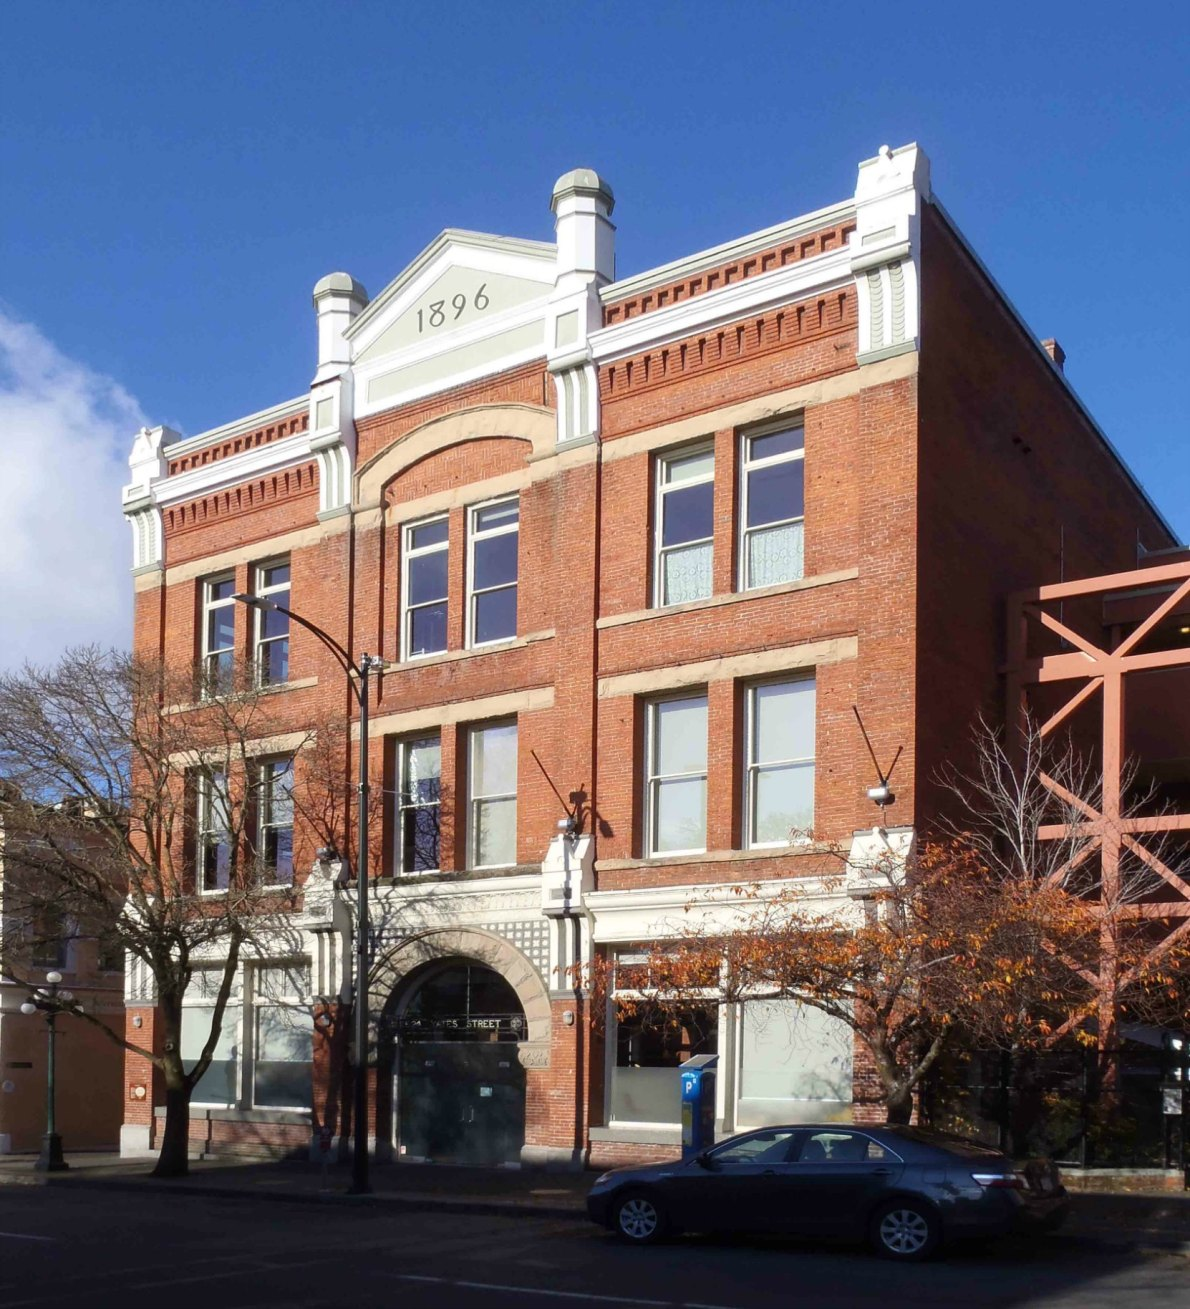 Leiser Building, 524 Yates Street. Built in 1896 as a warehouse for Simon Leiser. Architect: A.C. Ewart.